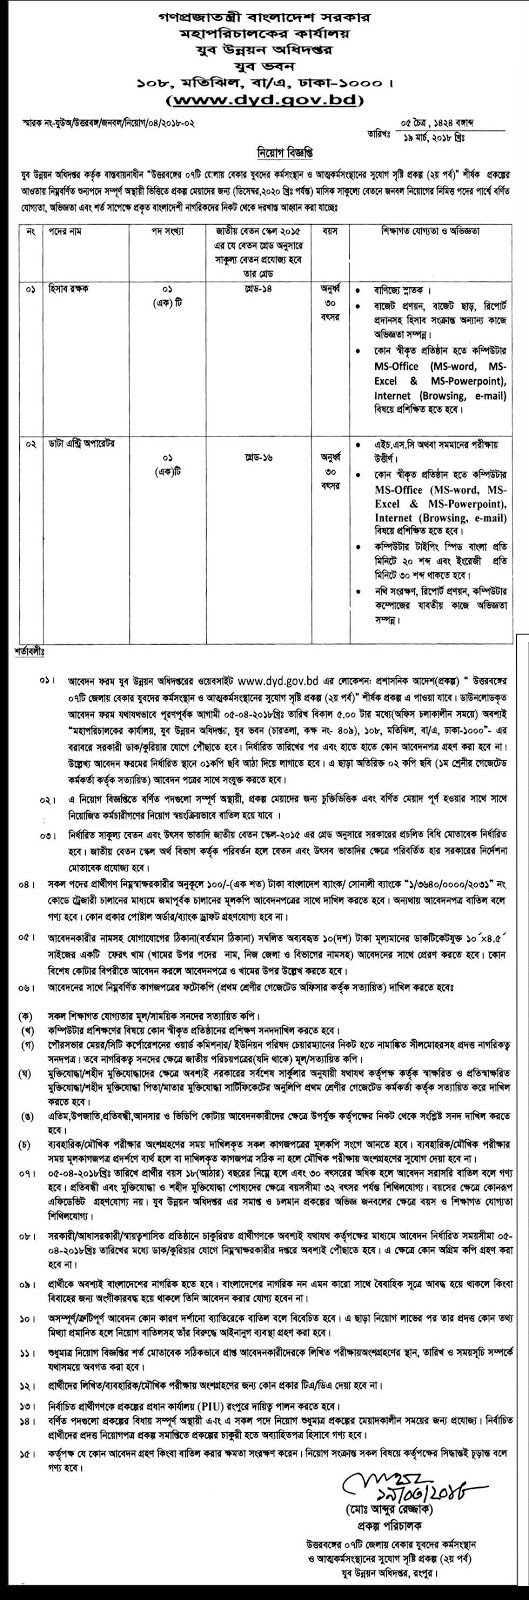 Department of Youth Development (DYD) Recruitment Circular 2018